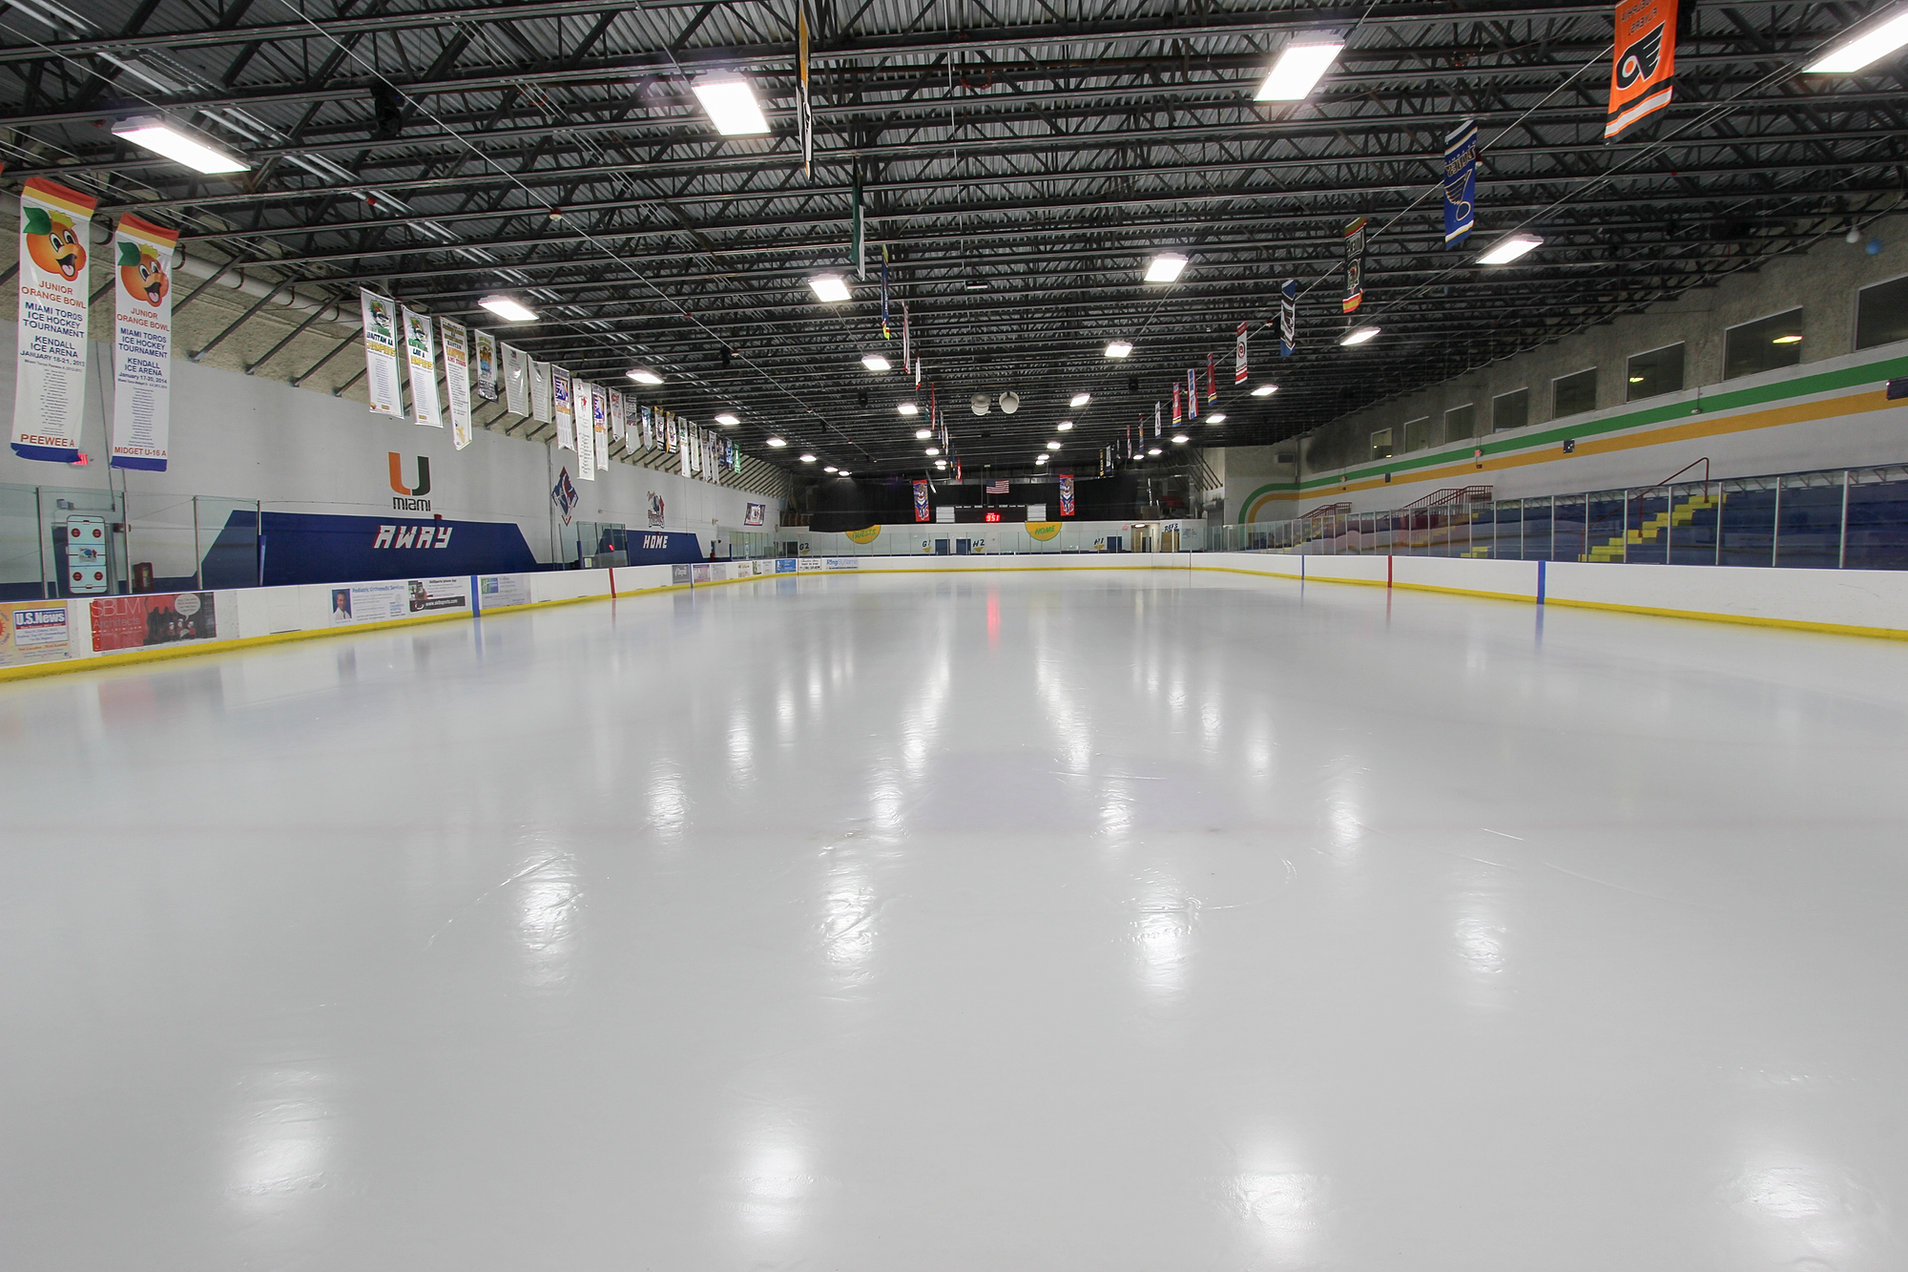 Roller skating rink kendall park nj - Welcome To Kendall Ice Arena